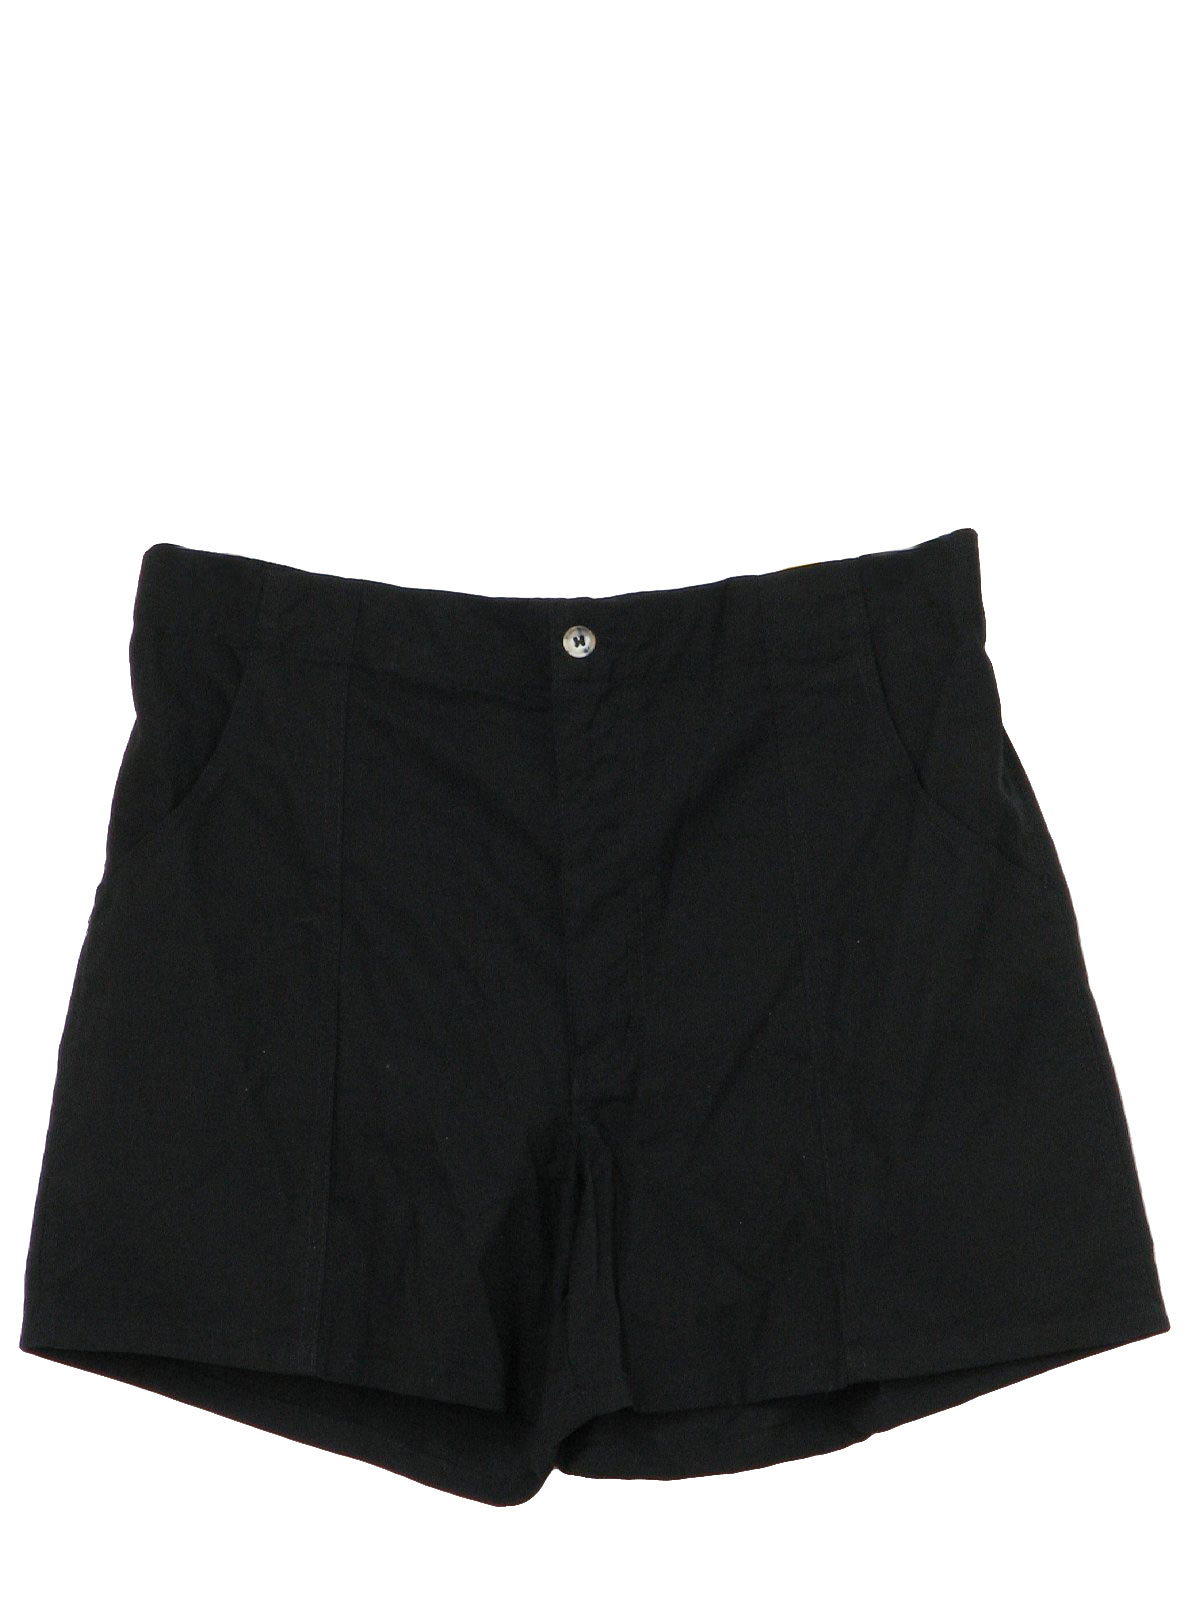 1980's Retro Shorts: 80s -Weeds- Mens black cotton poplin totally ...